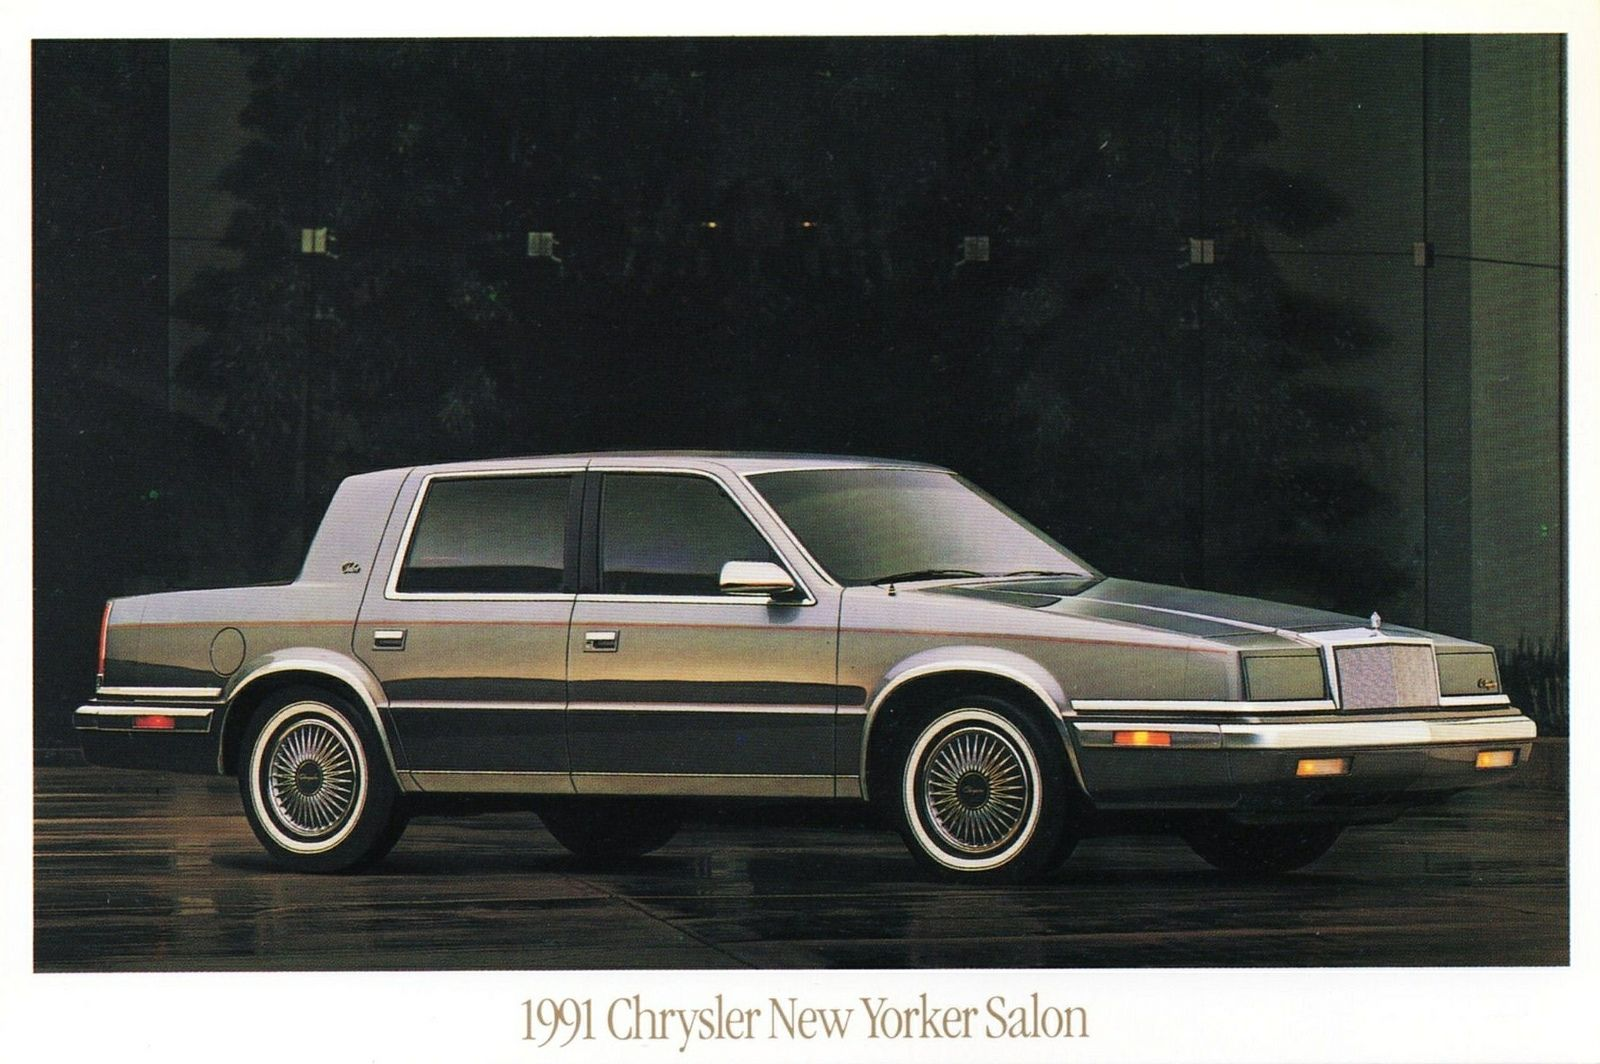 1991 Chrysler New Yorker Salon Chrysler New Yorker Chrysler